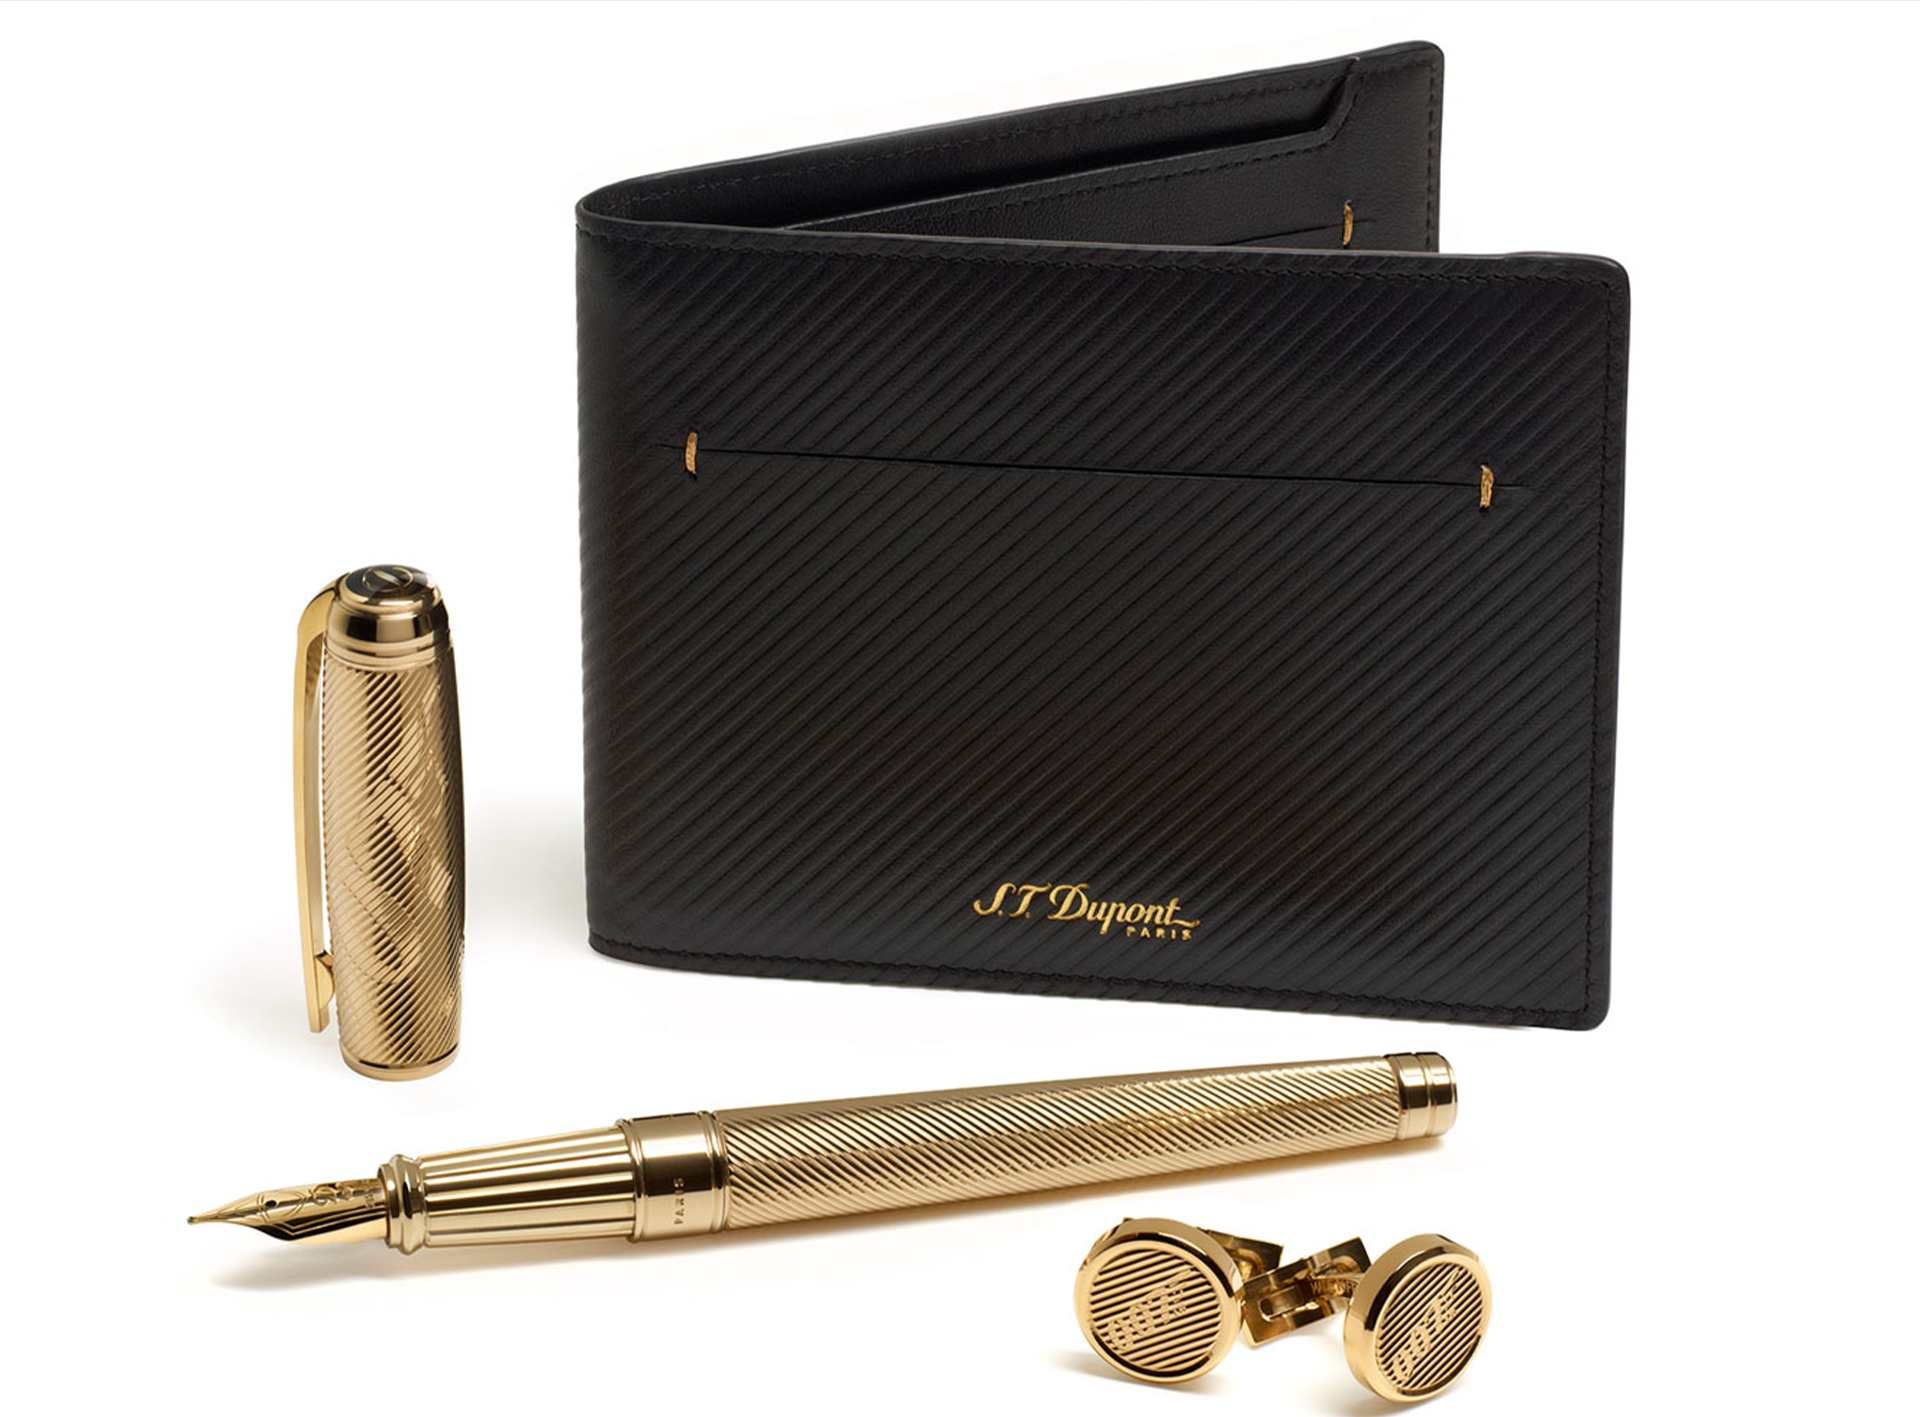 S.T. Dupont 007 Limited Edition Collection